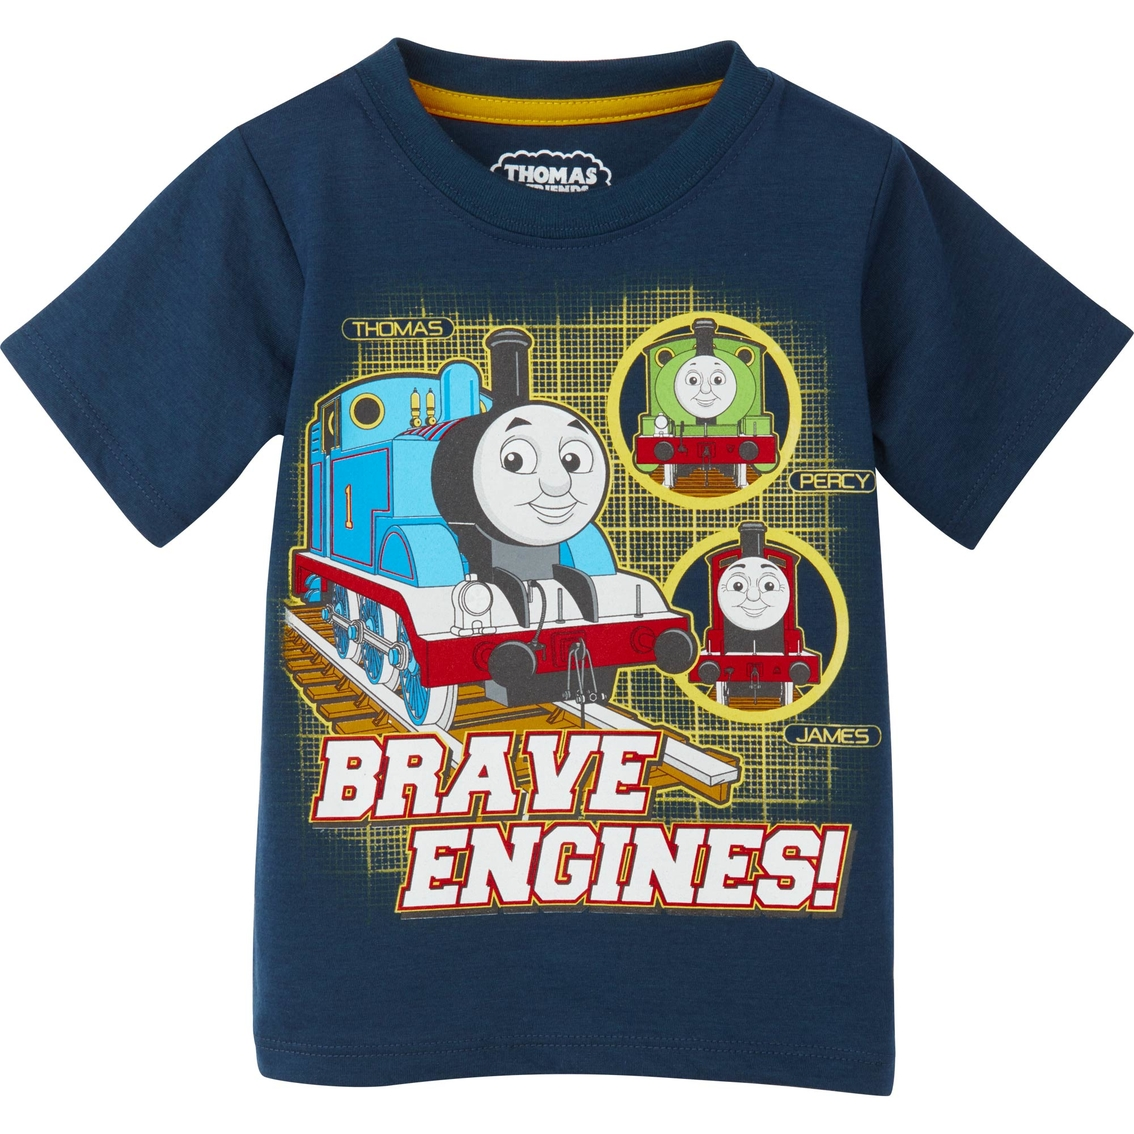 THOMAS TANK ENGINE TRAIN JAMES PERCY Tee T-Shirt NEW Toddlers Size 2T or 4T  $16